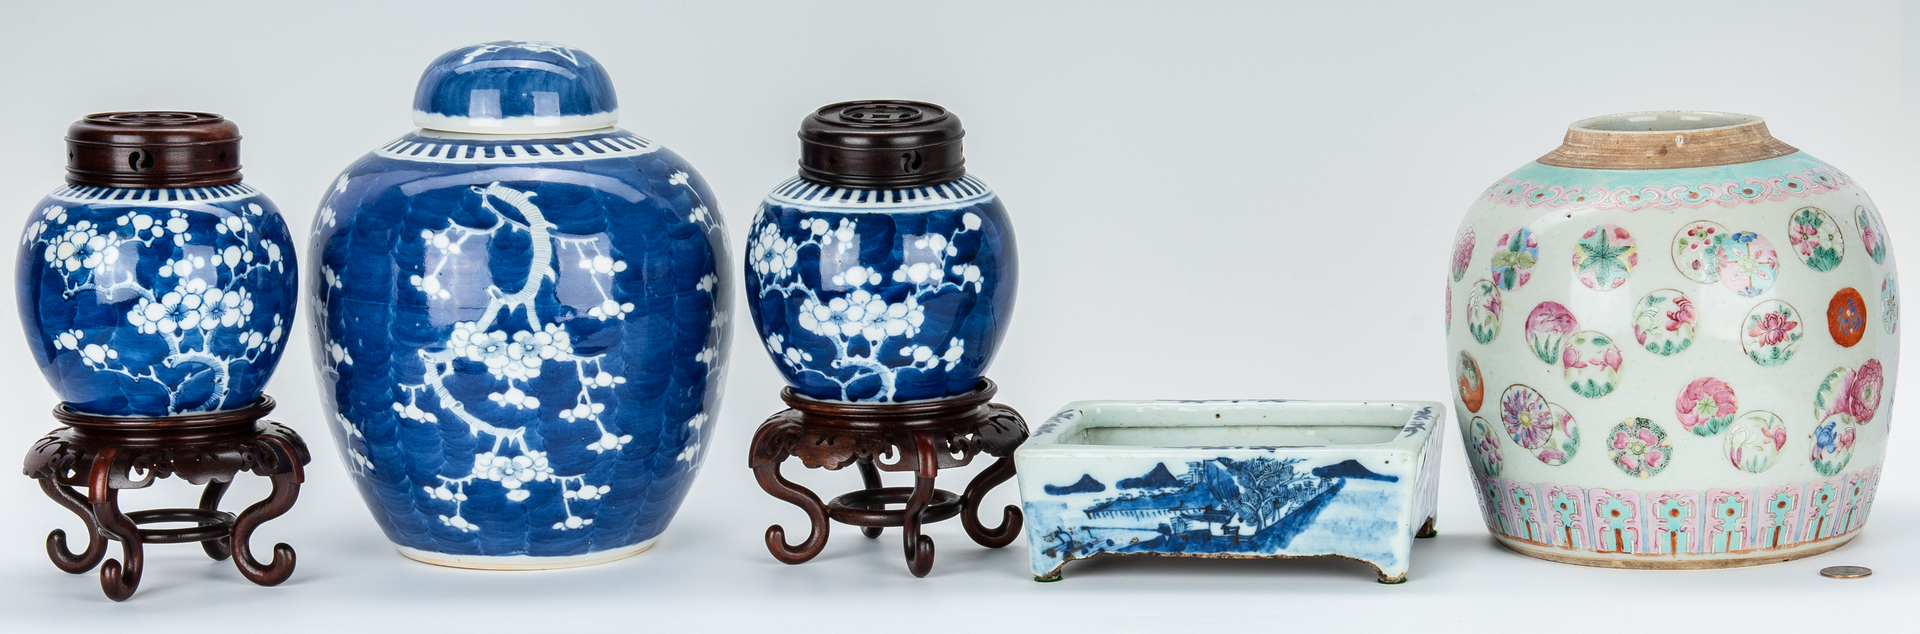 Lot 760: 3 Chinese Hawthorne Pattern Ginger Jars & 2 Others